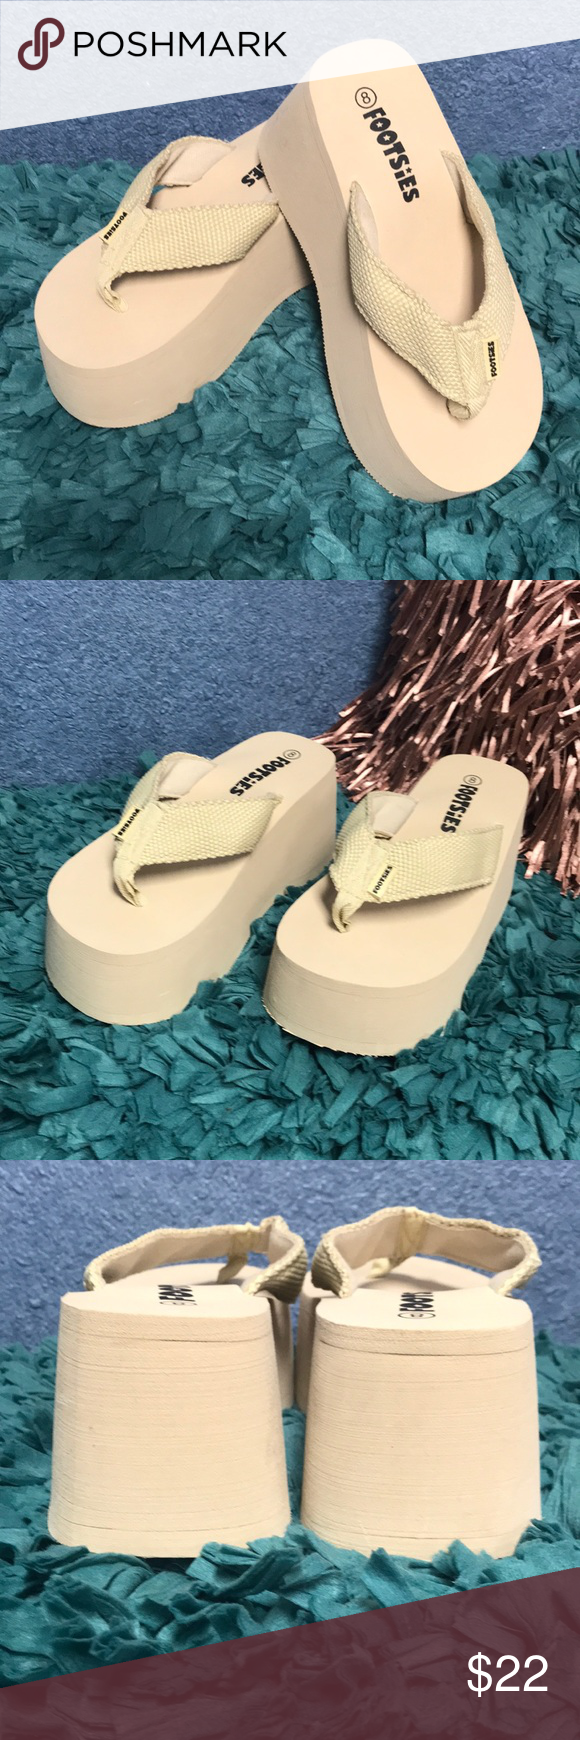 52a4c58cd31 Footsies Platform Flip Flops Size 8 Brand New without Box FOOTSIES Platform  Flip Flops Size 8 3 1 4 inch Platform Super Comfy   SO fun Color is Beige  ...